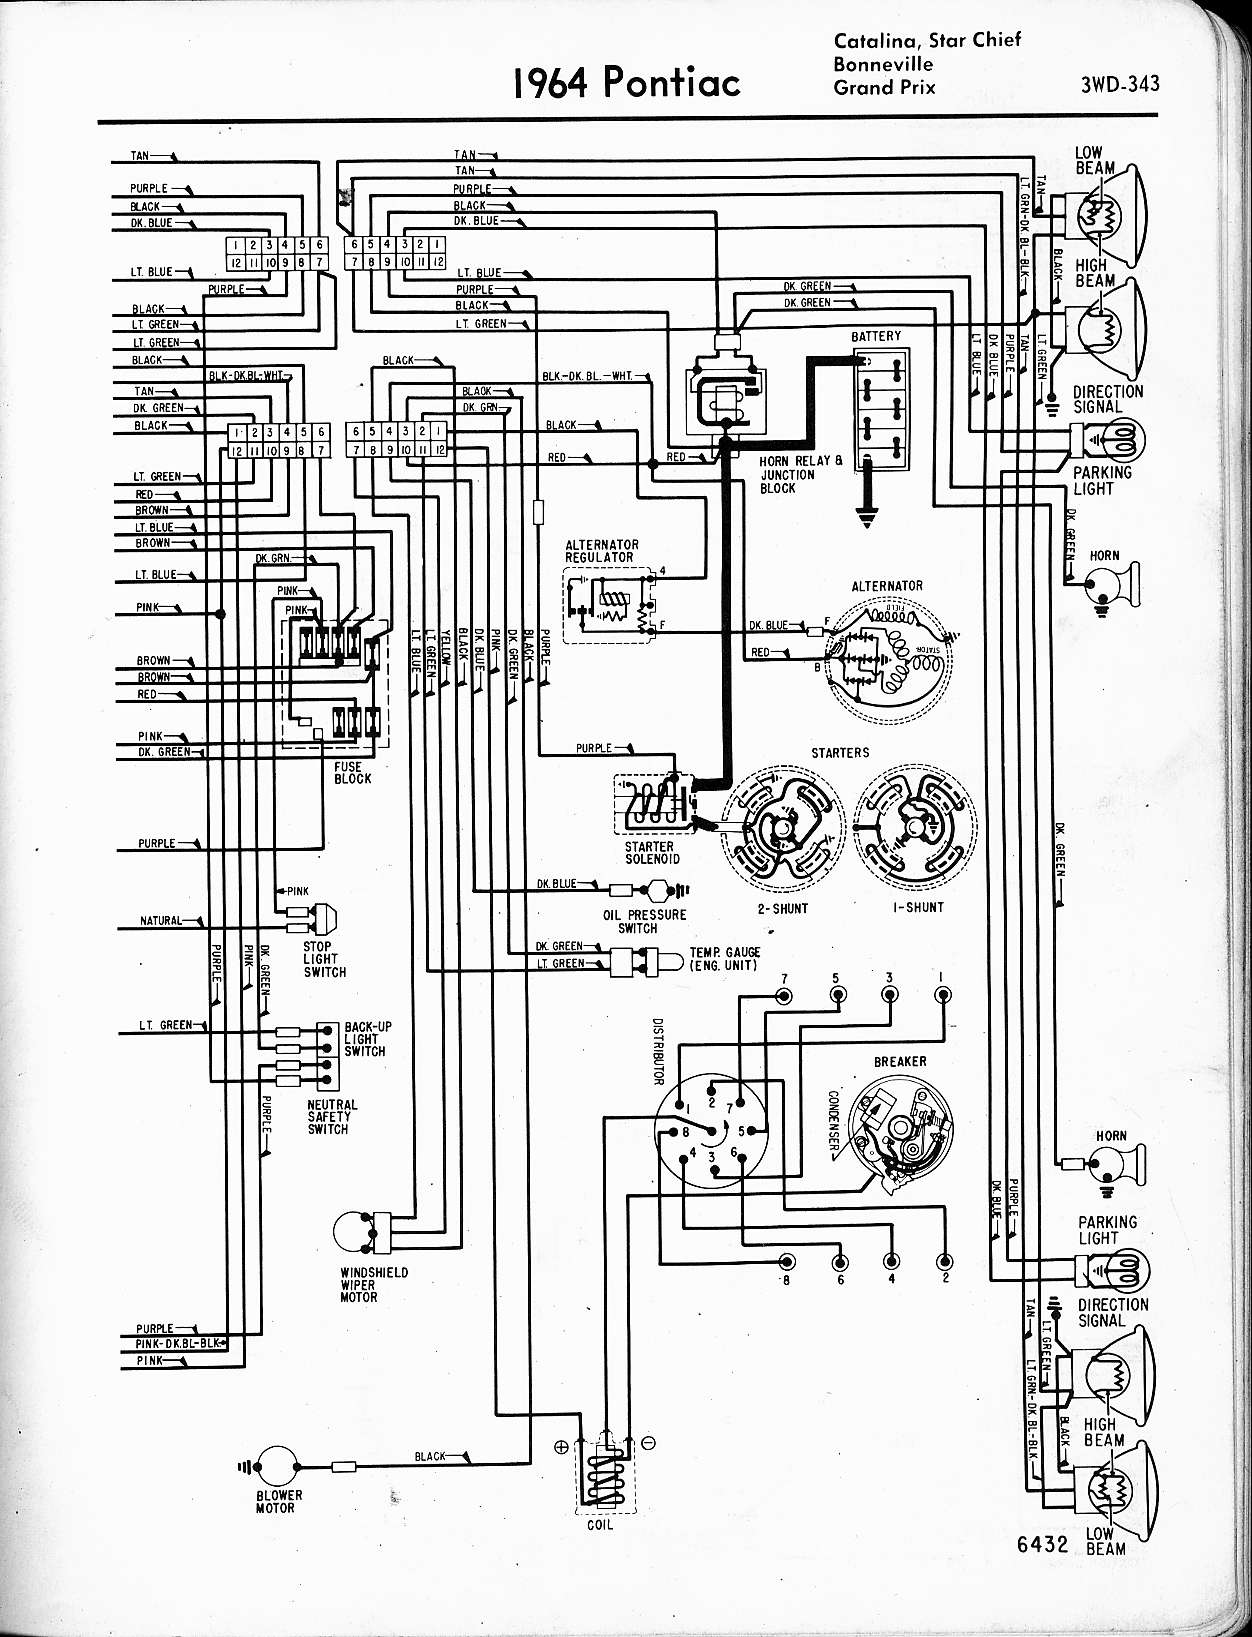 70 pontiac wiring diagram simple wiring diagram rh david huggett co uk